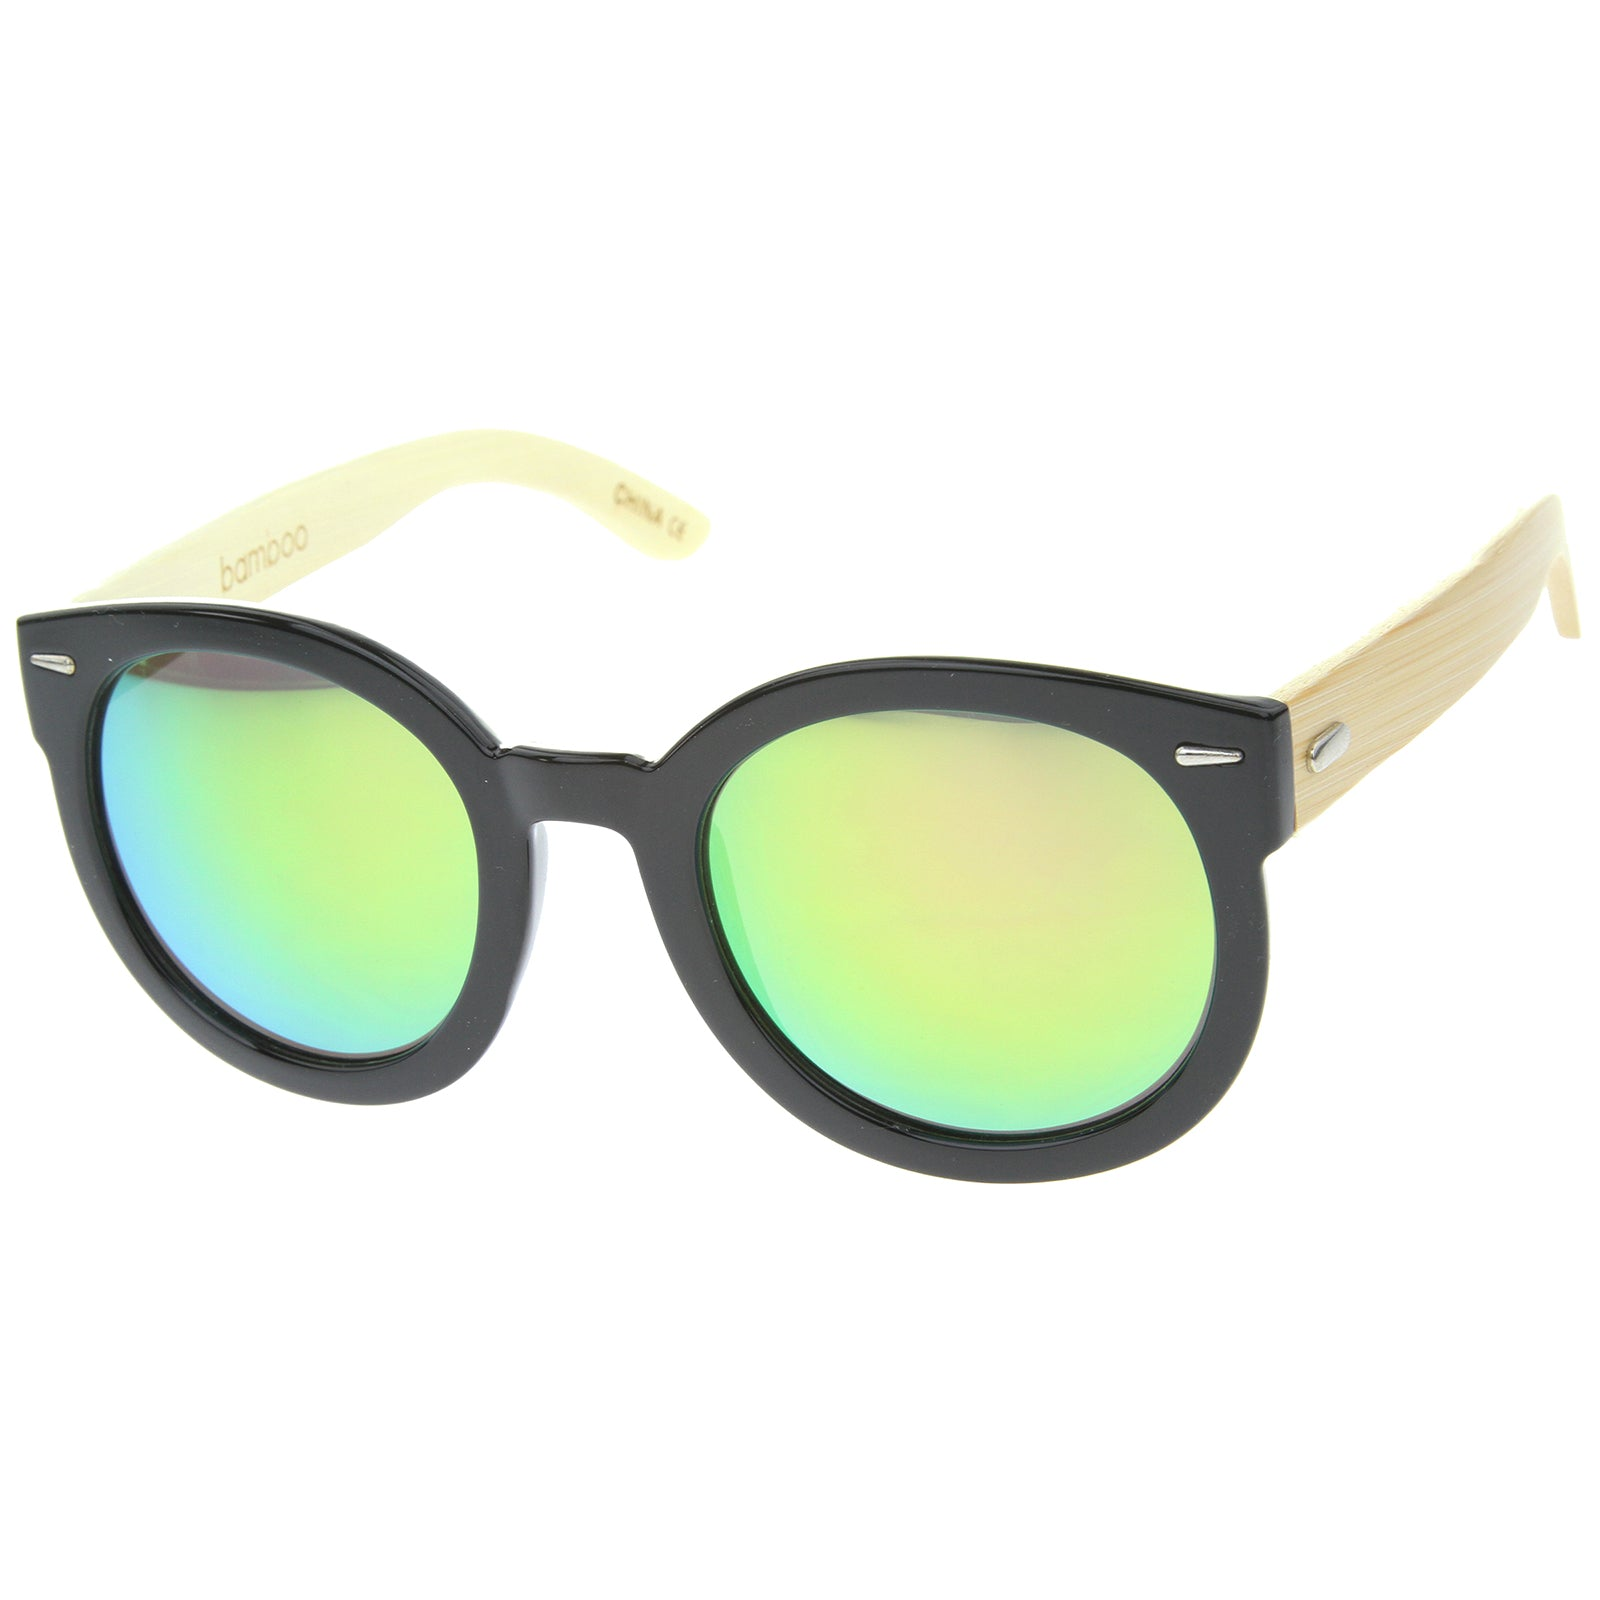 Womens Oversized Sunglasses With UV400 Protected Mirrored Lens - sunglass.la - 6